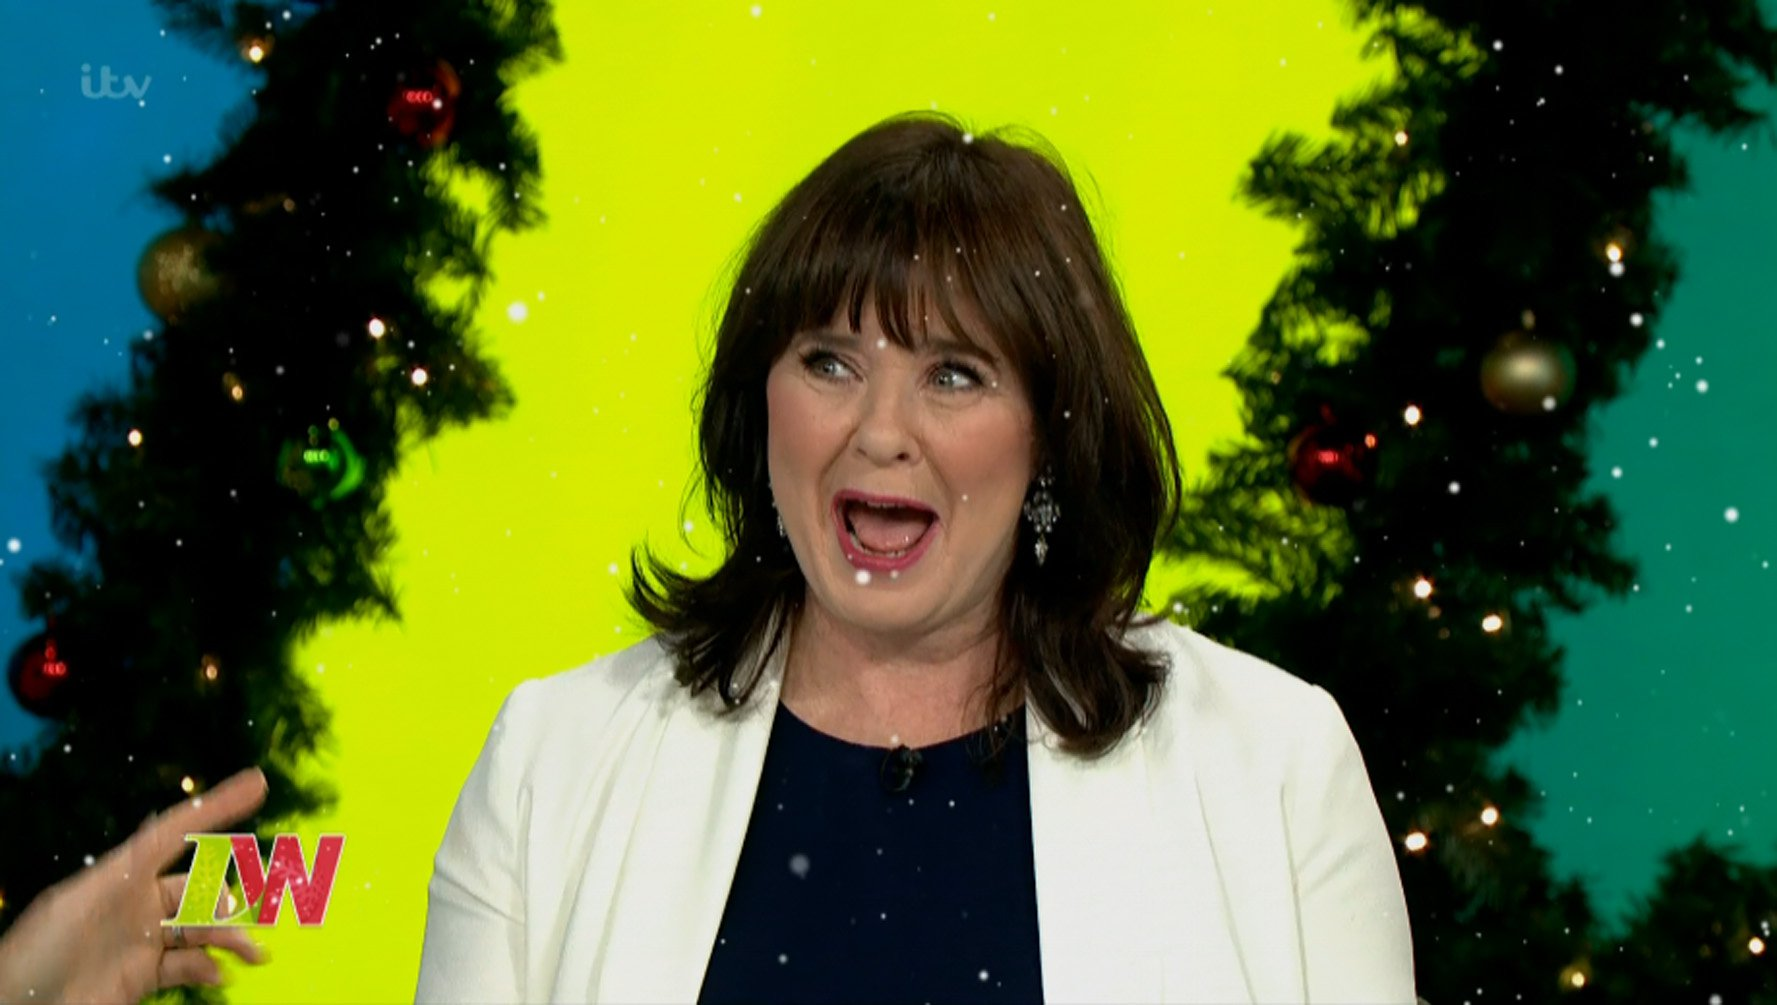 Loose Women viewers left divided as Coleen Nolan returns to show after Kim Woodburn spat